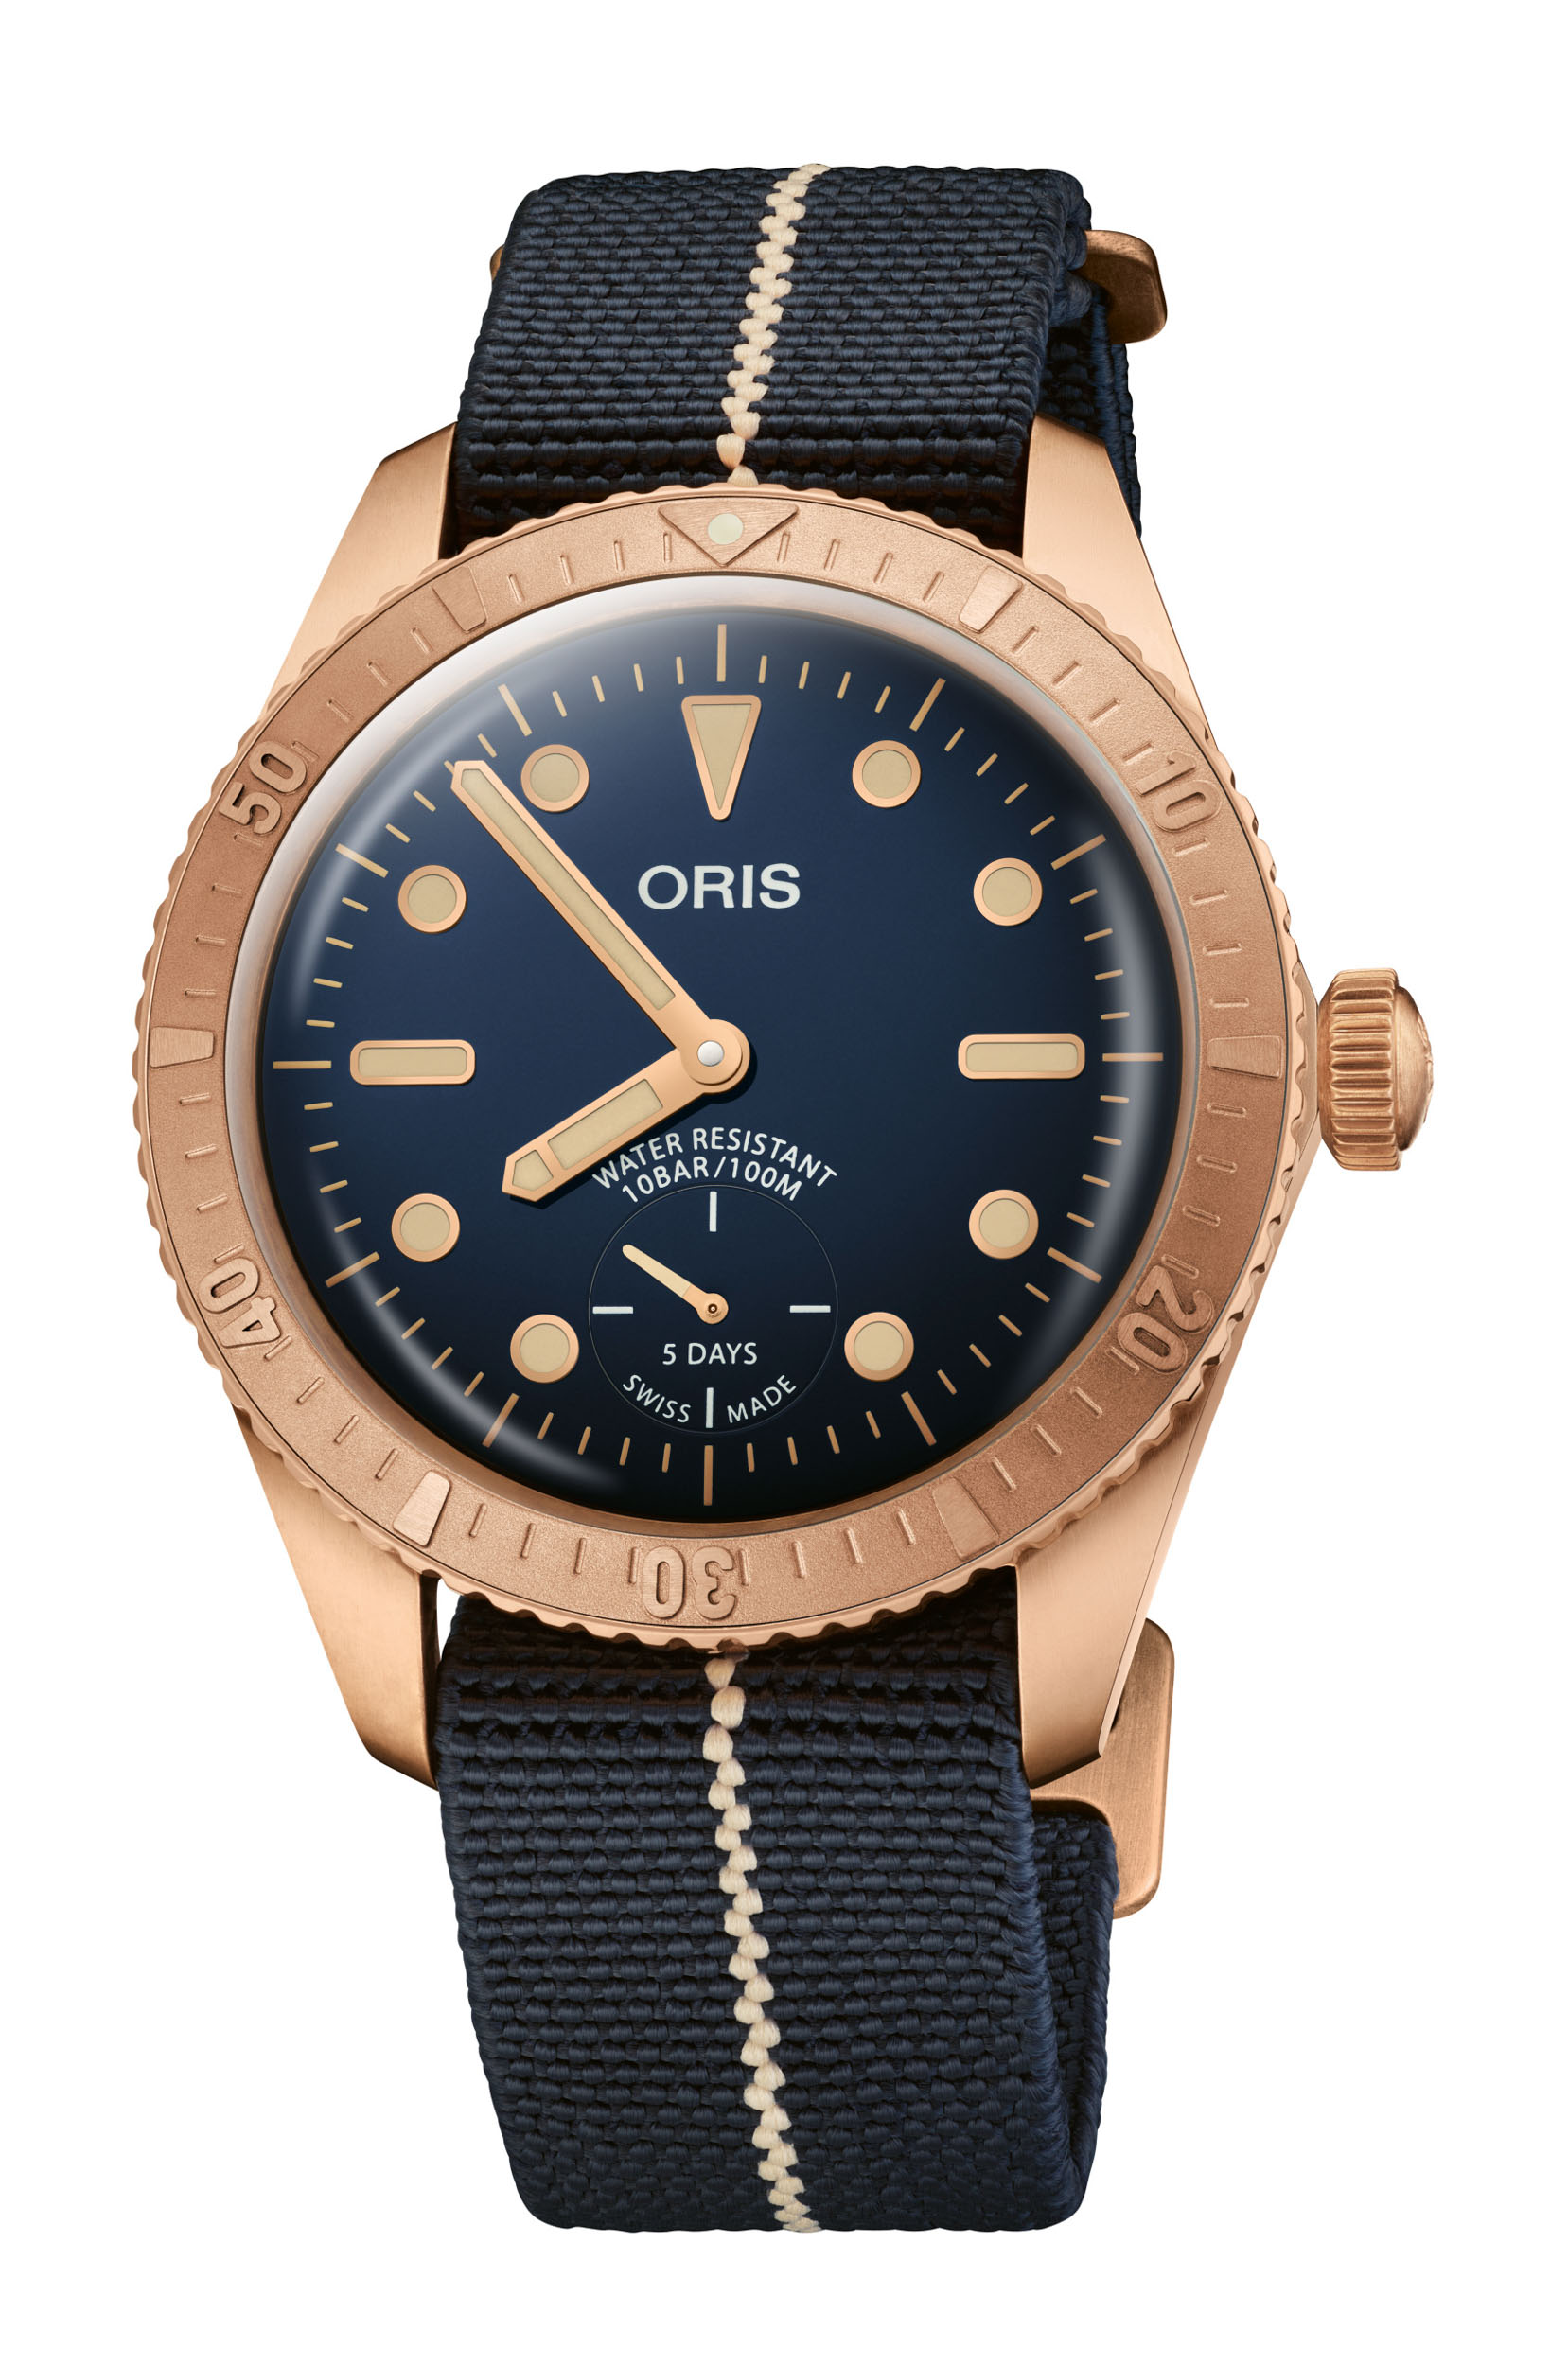 01 401 7764 3185 Set Oris Carl Brashear Calibre 401 Limited Edition HighRes 12943